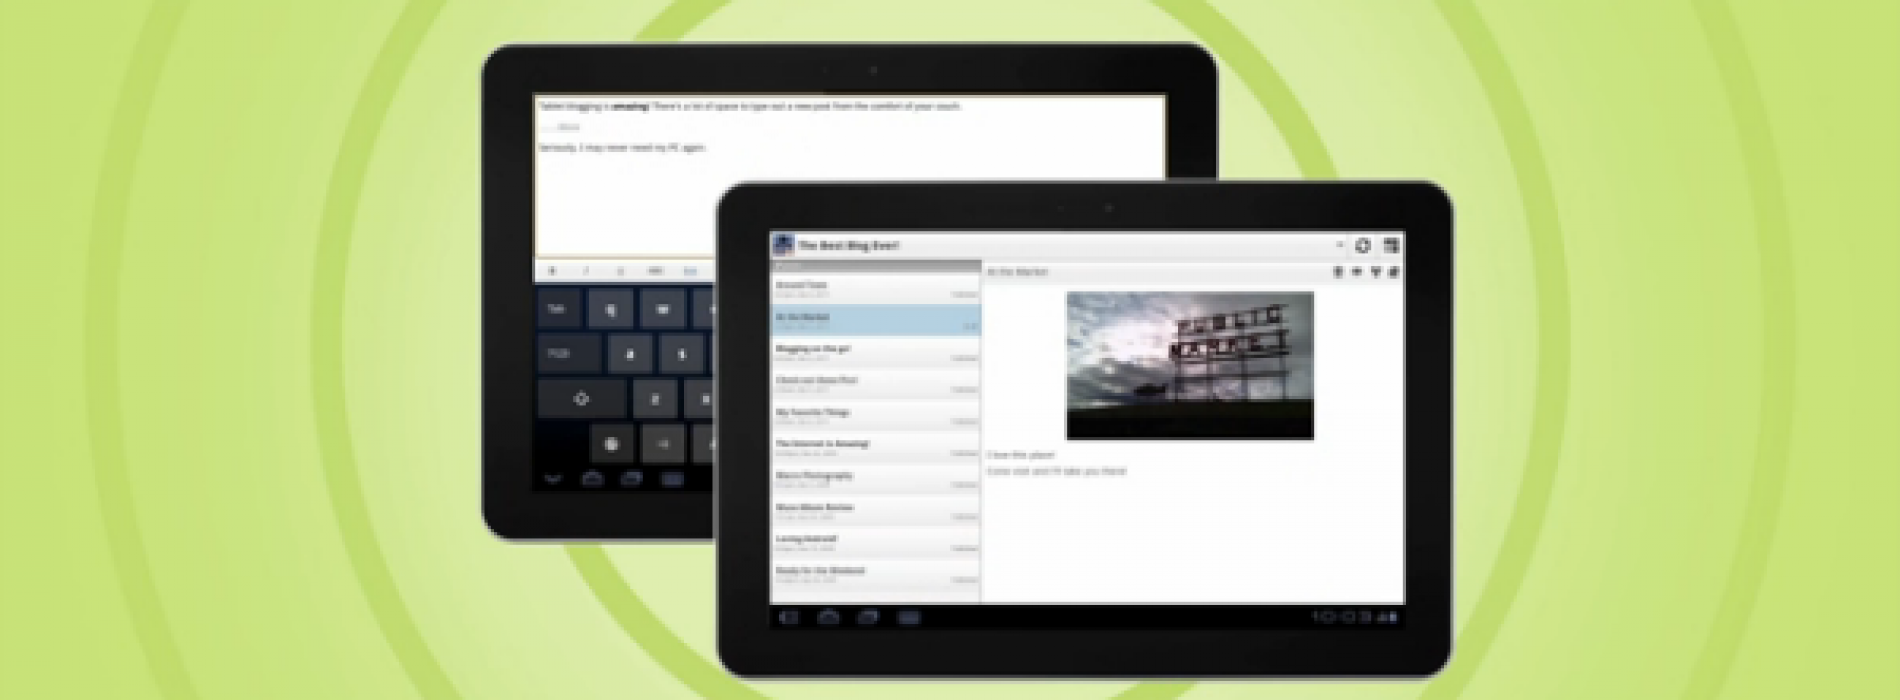 Automattic releases tablet-friendly WordPress 2.0 for Android